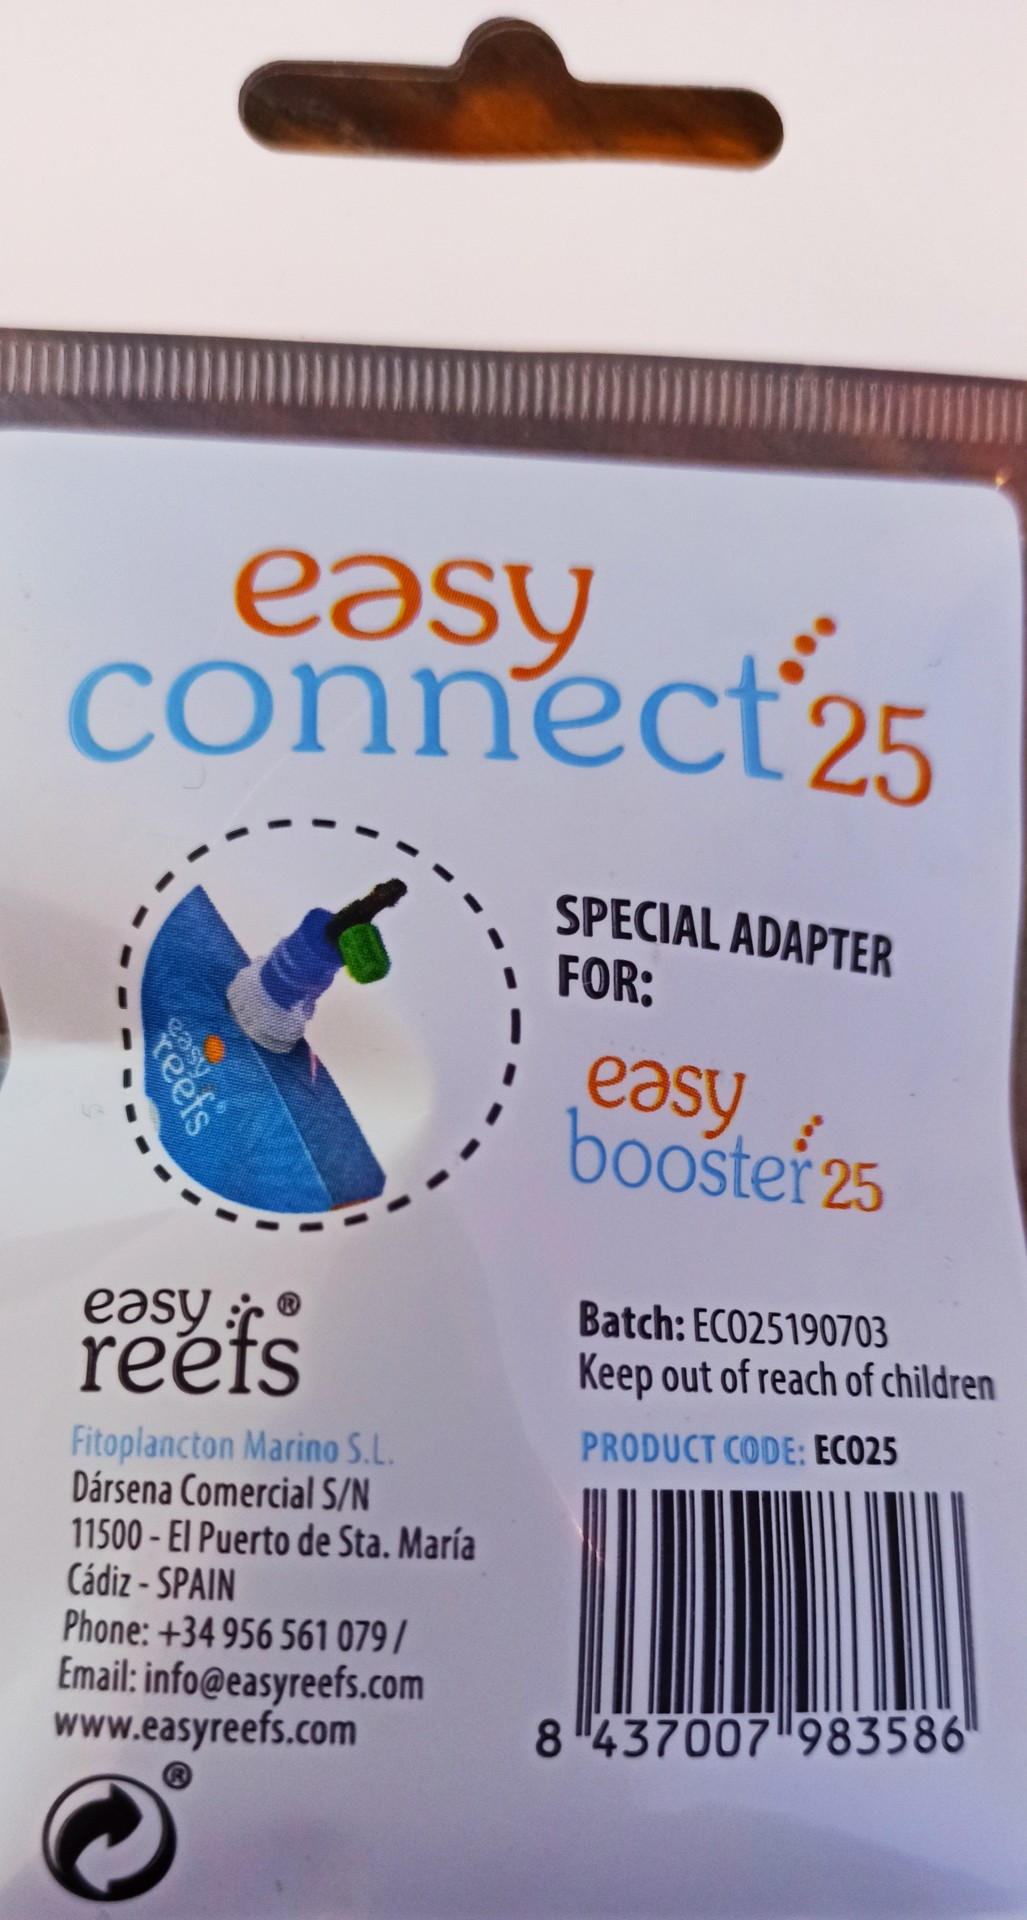 Easy Connect 25 - Easy Reefs